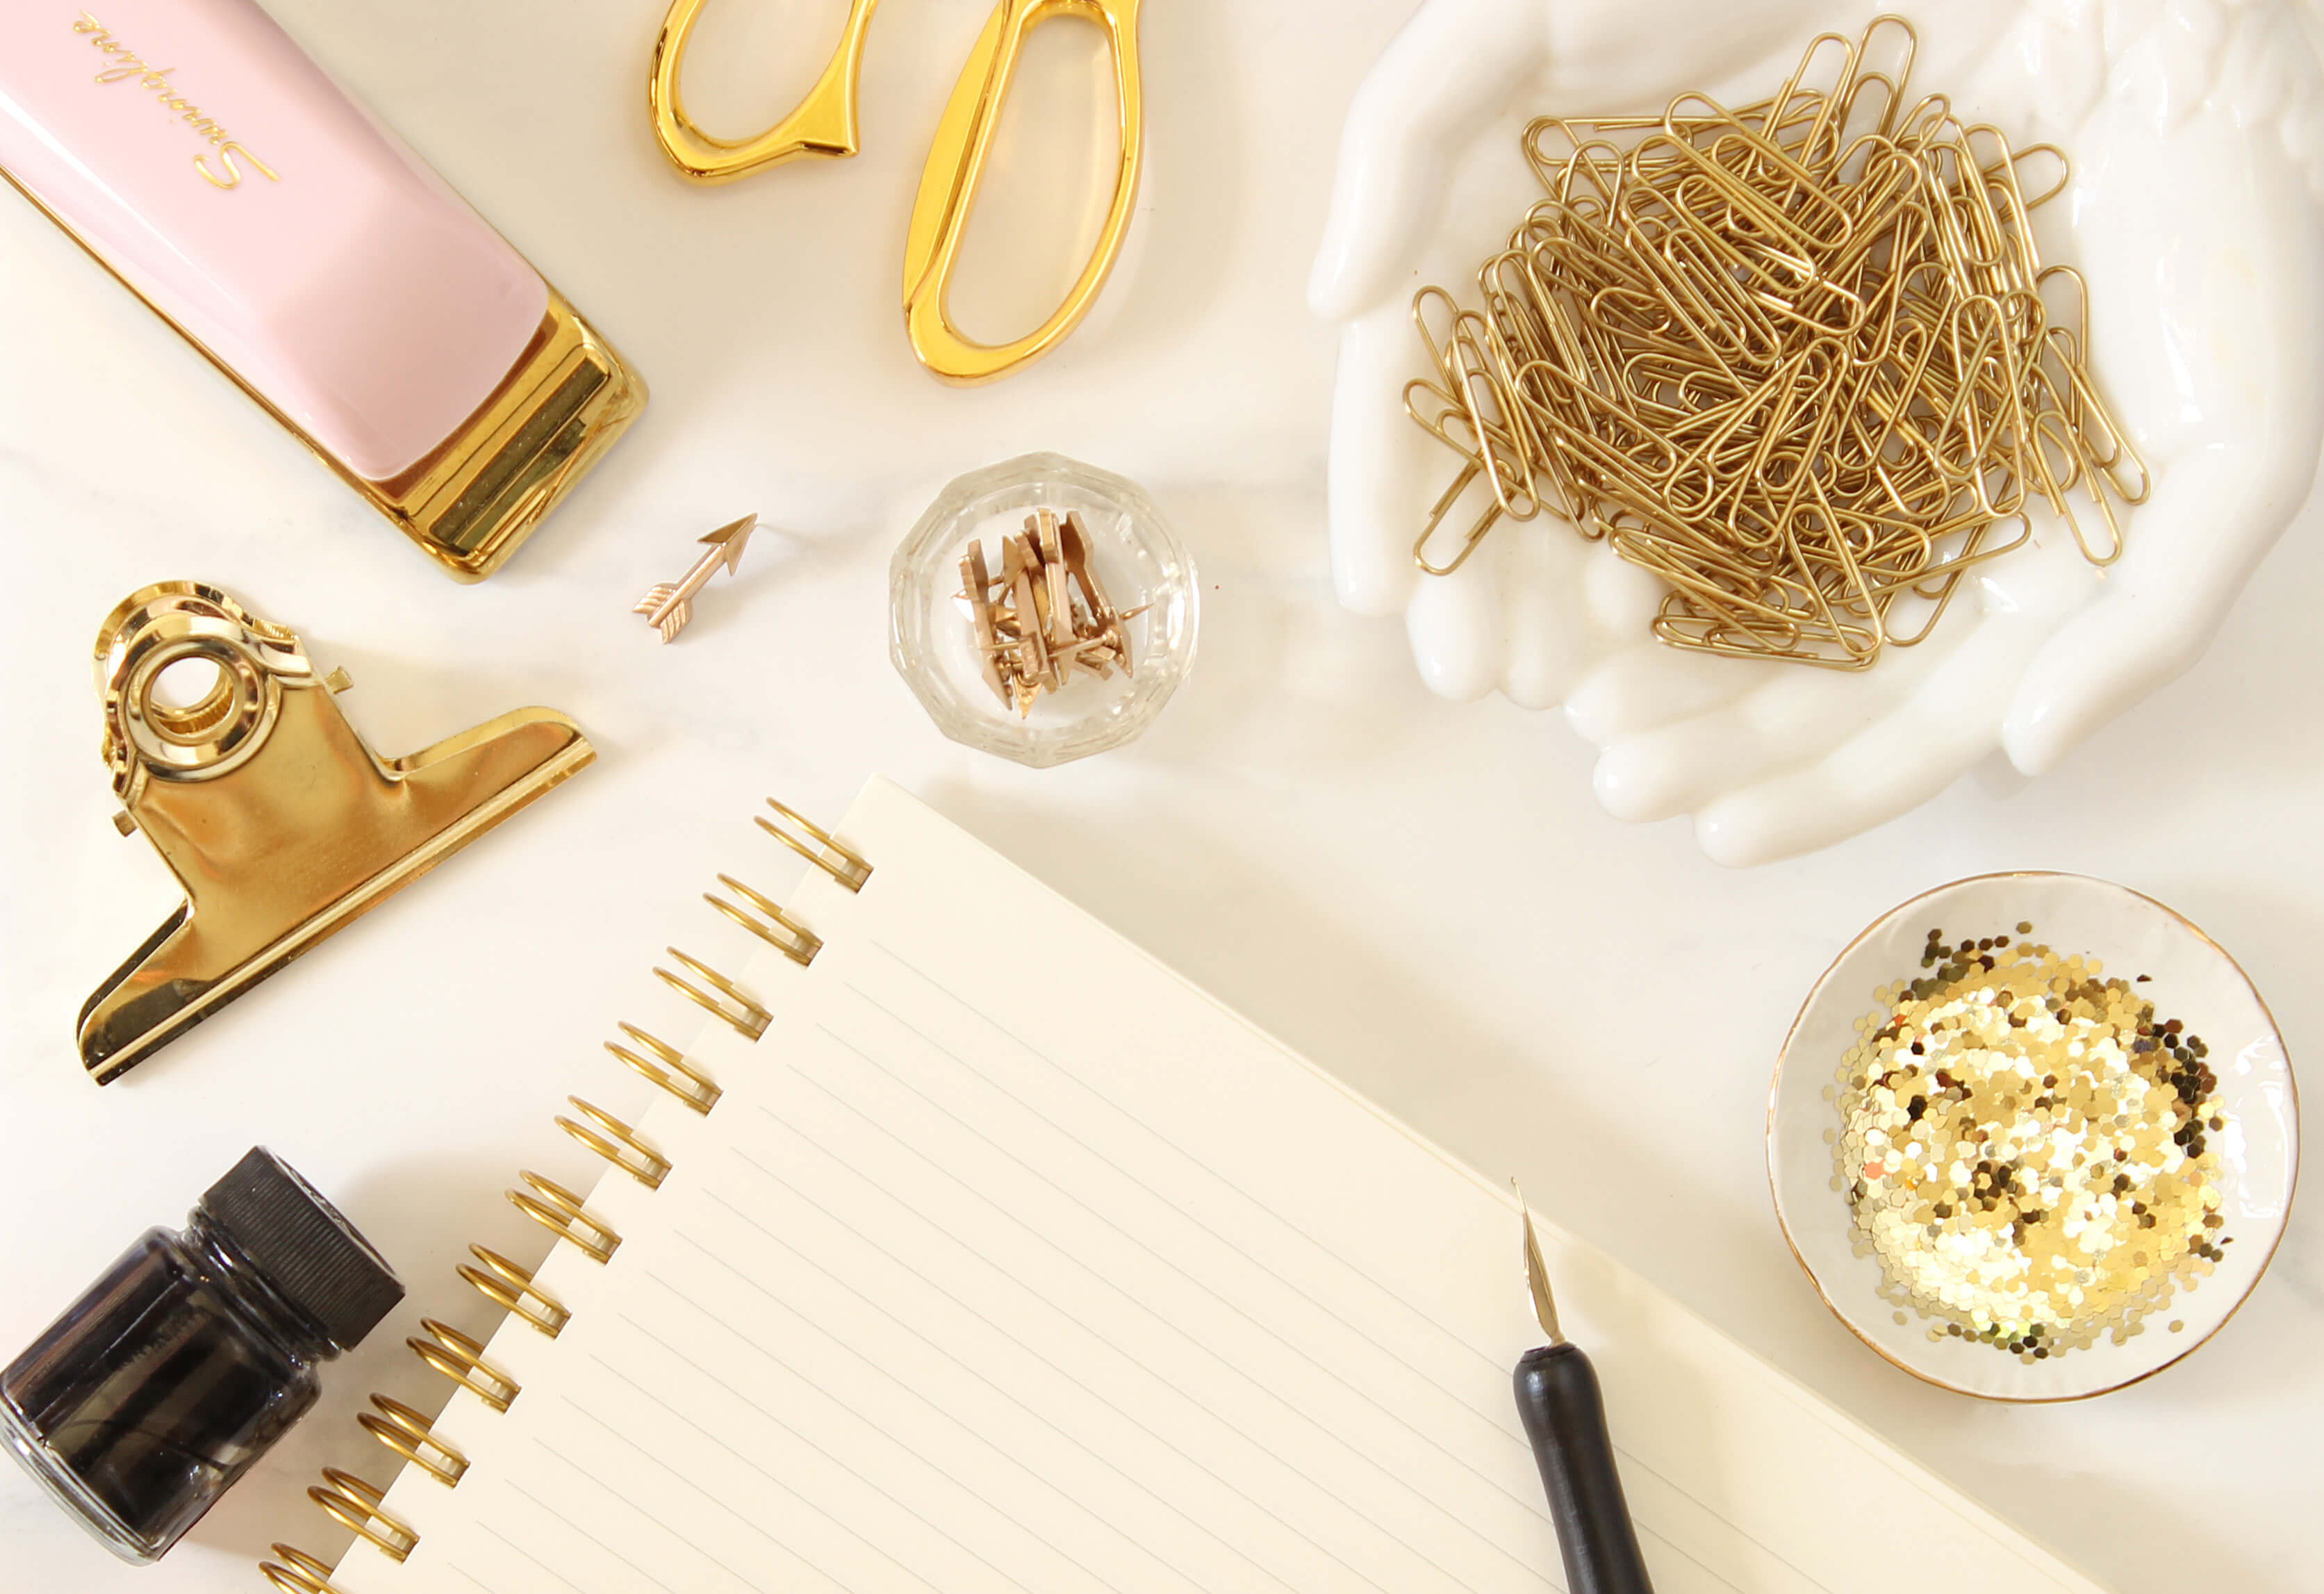 Super Cute School Supplies You Didnt Know You Needed Ebates Blog